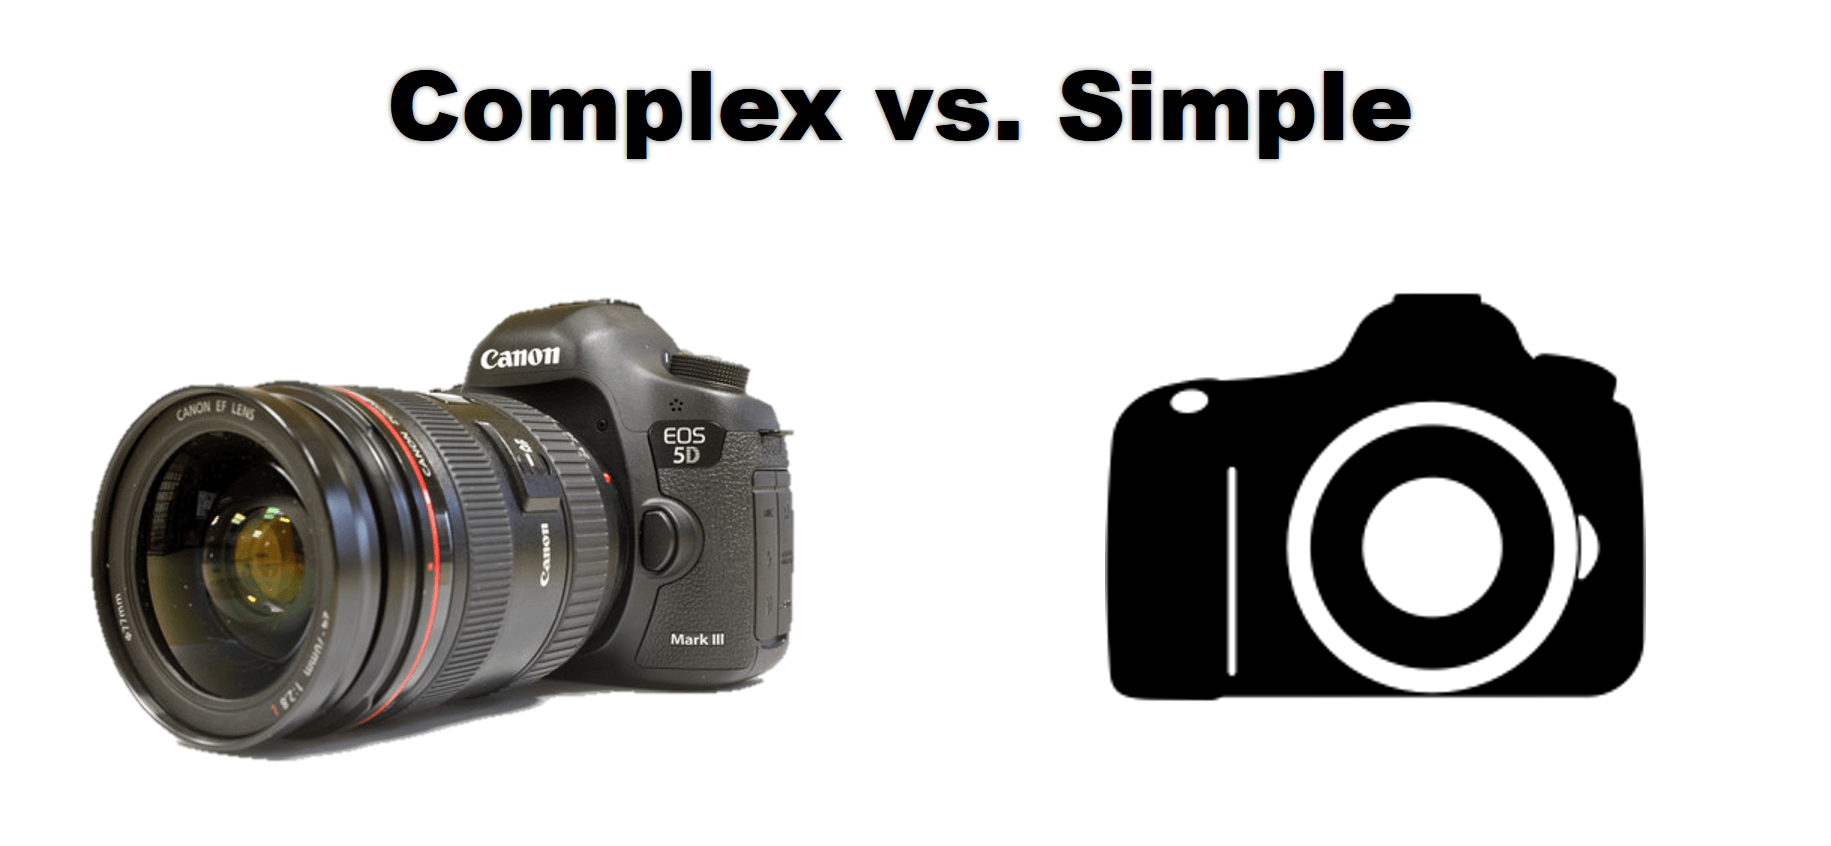 image of an actual camera next to an camera icon illustrating complex vs. simple